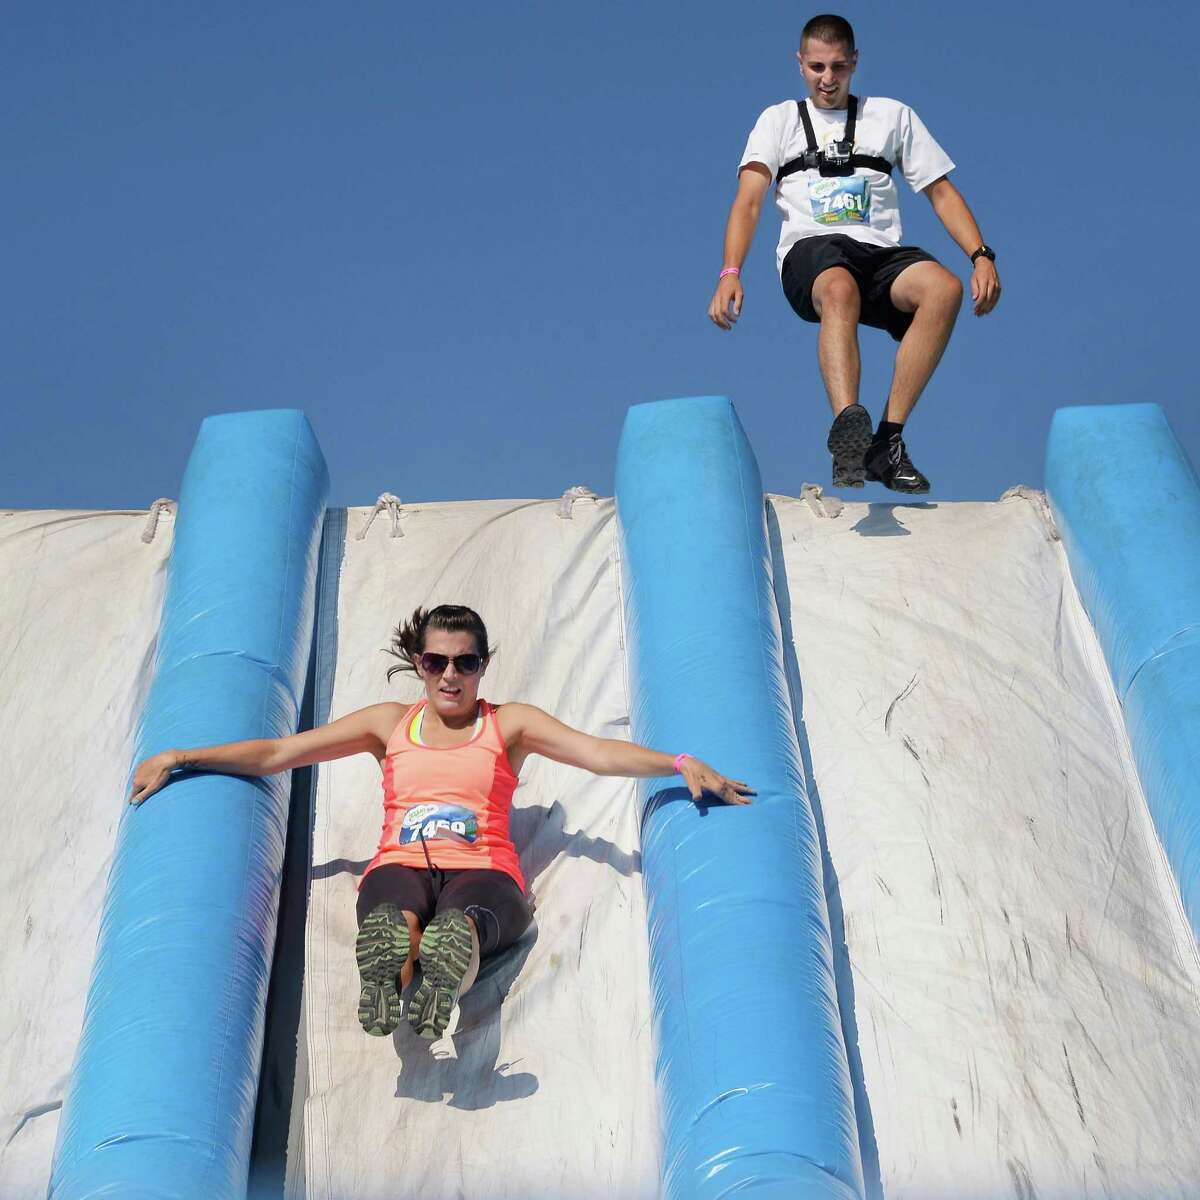 Caitlin Cady, left, and husband Ryan Cady of Schaghticoke finish the Insane Inflatable 5K Obstacle Fun Run at the Ellms Family Farms Saturday Sept. 5, 2015 in Ballston Spa, NY. (John Carl D'Annibale / Times Union)